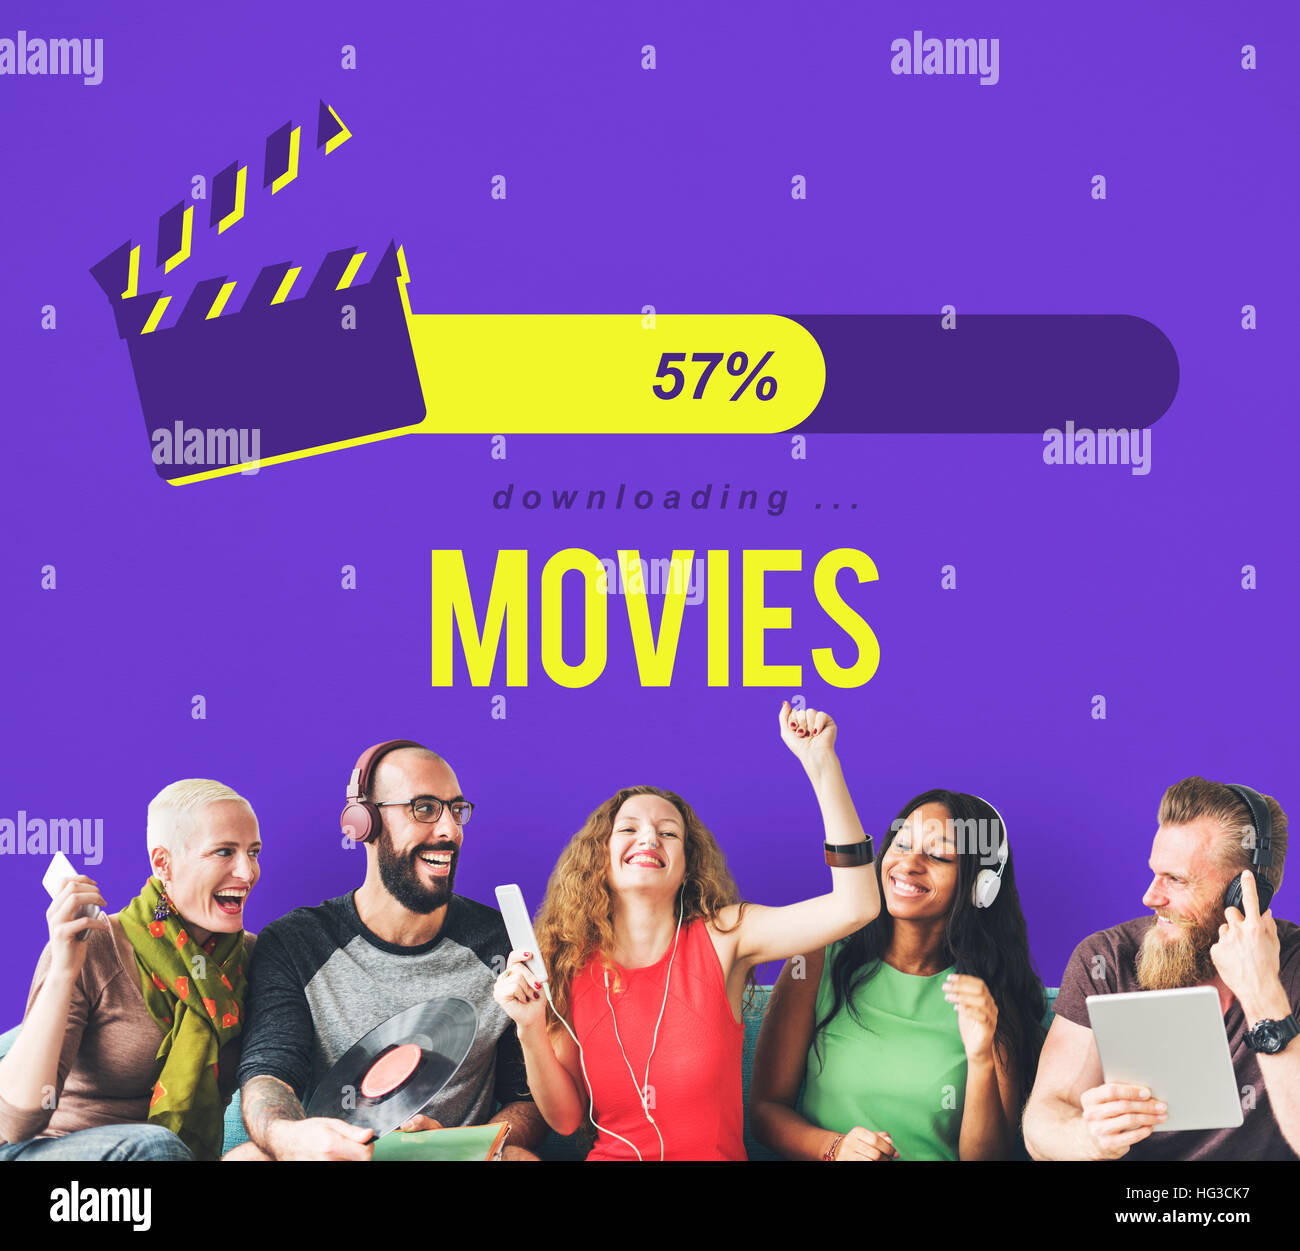 Entertainment Multimedia Theatre Movies Concept - Stock Image